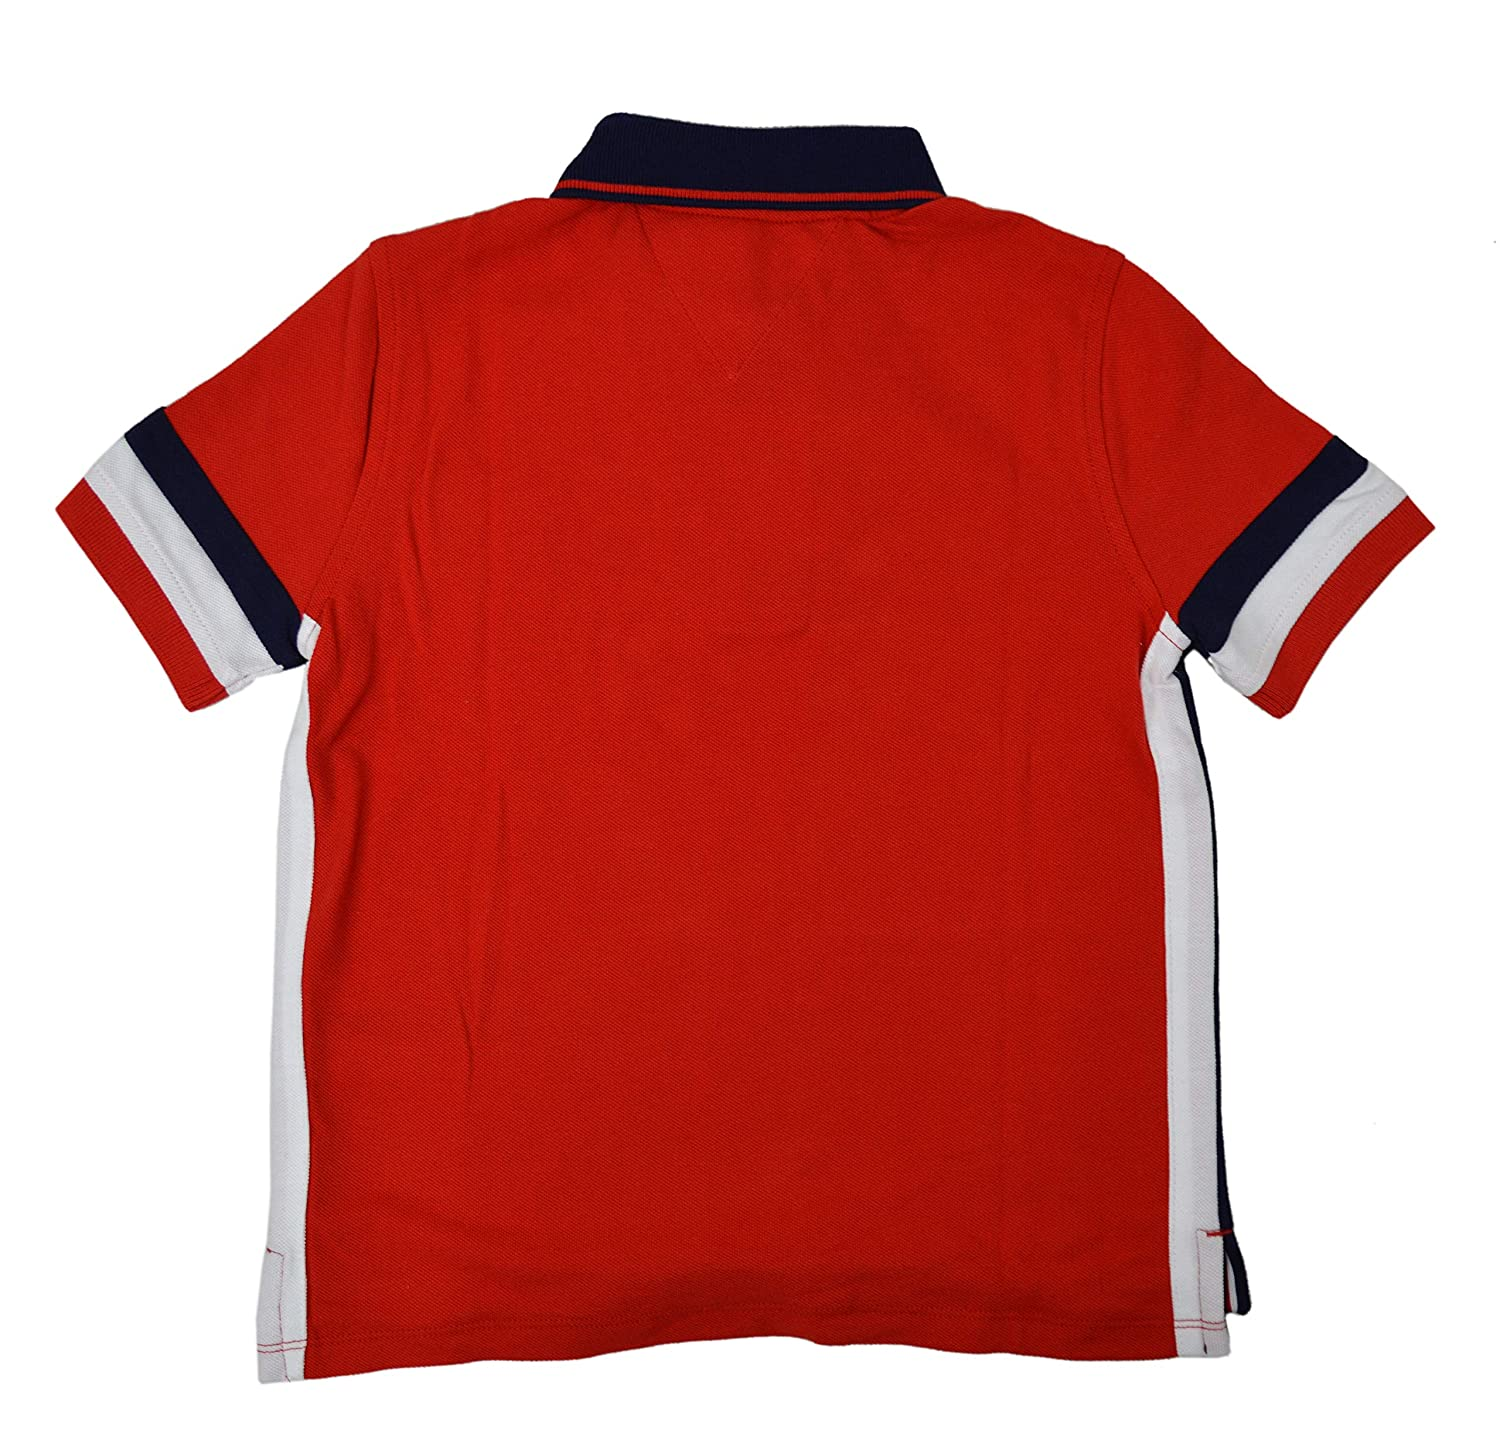 ff607234 Amazon.com: Tommy Hilfiger Boys Kids Mesh Hilfiger Patch Side Striped Polo  Shirt Red Navy Blue White: Clothing